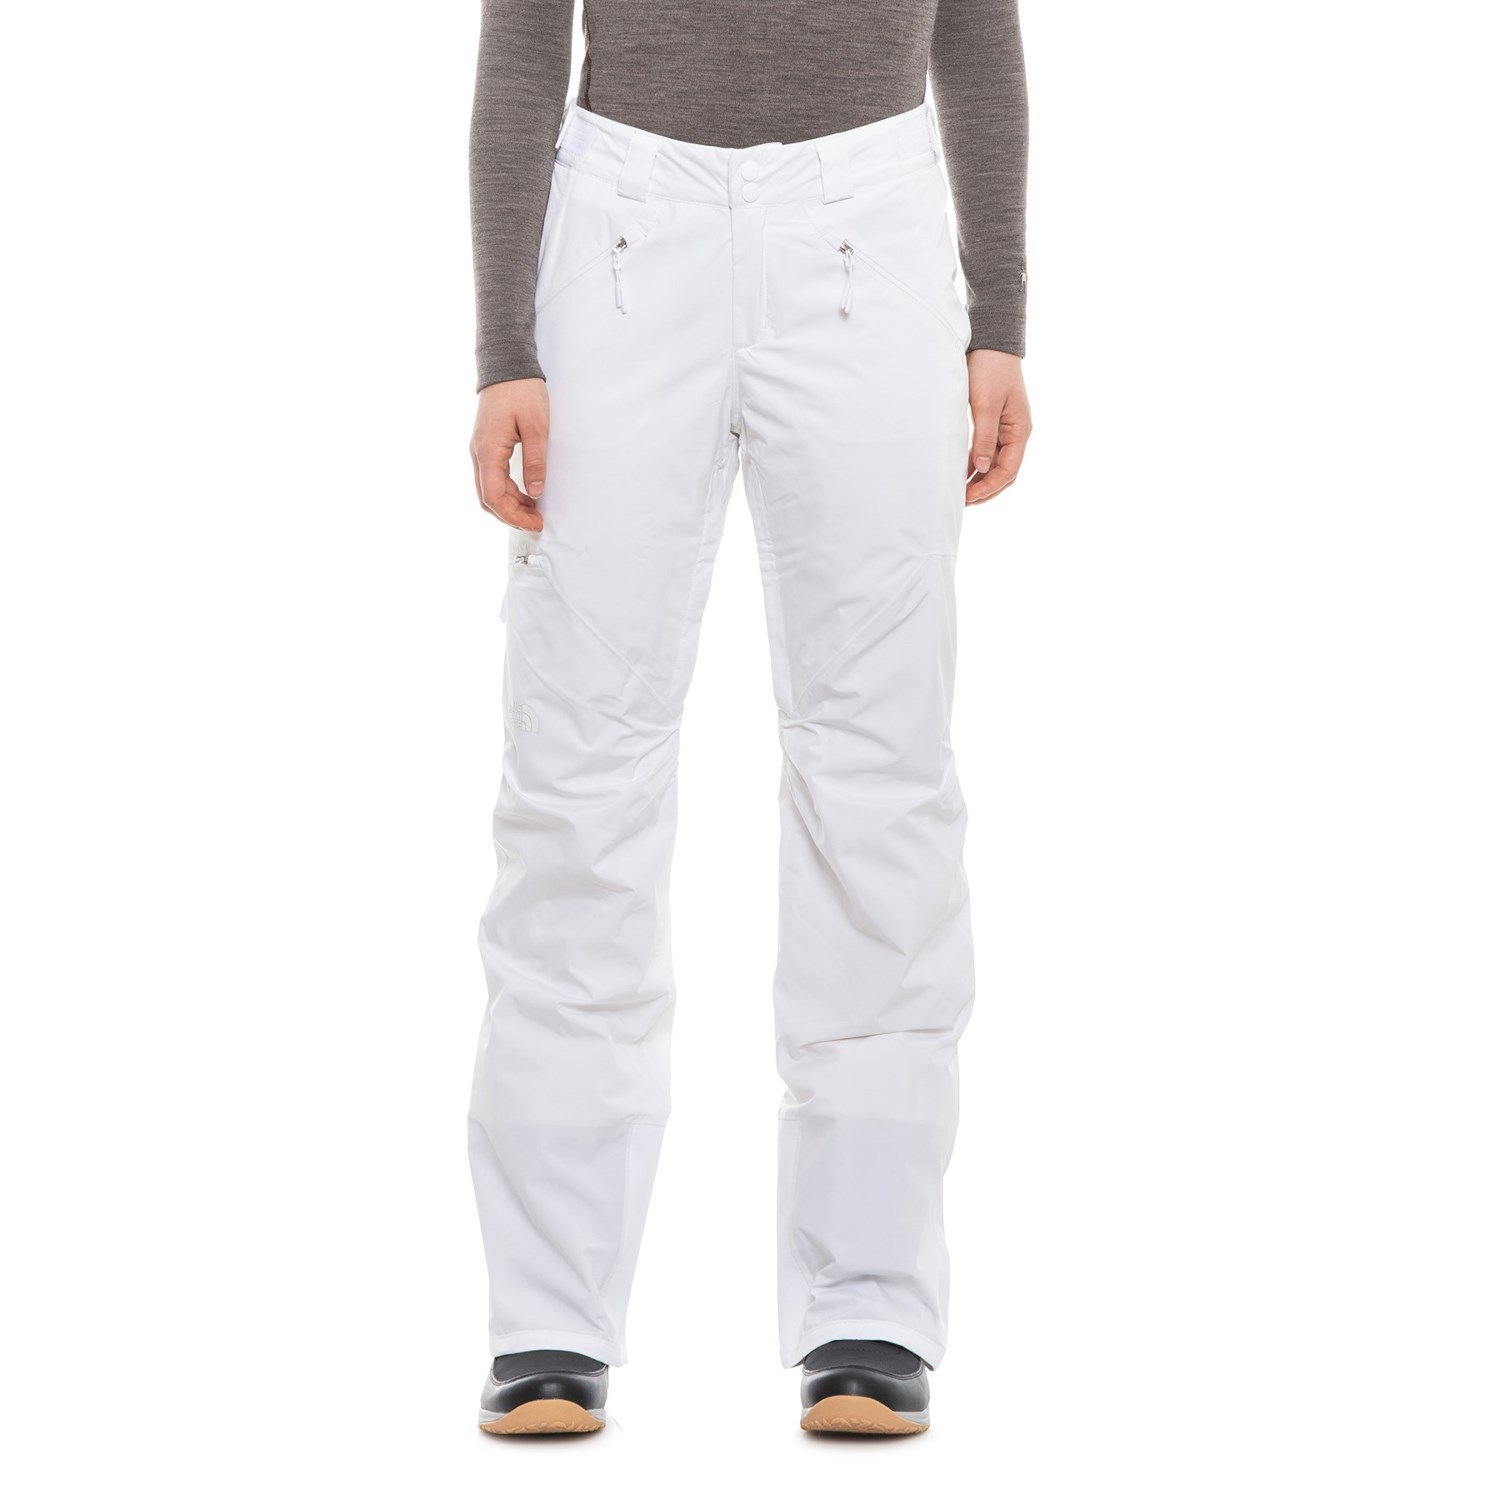 c55753f0142 The North Face Fourbarrel Ski Pants - Waterproof, Insulated (For Women)